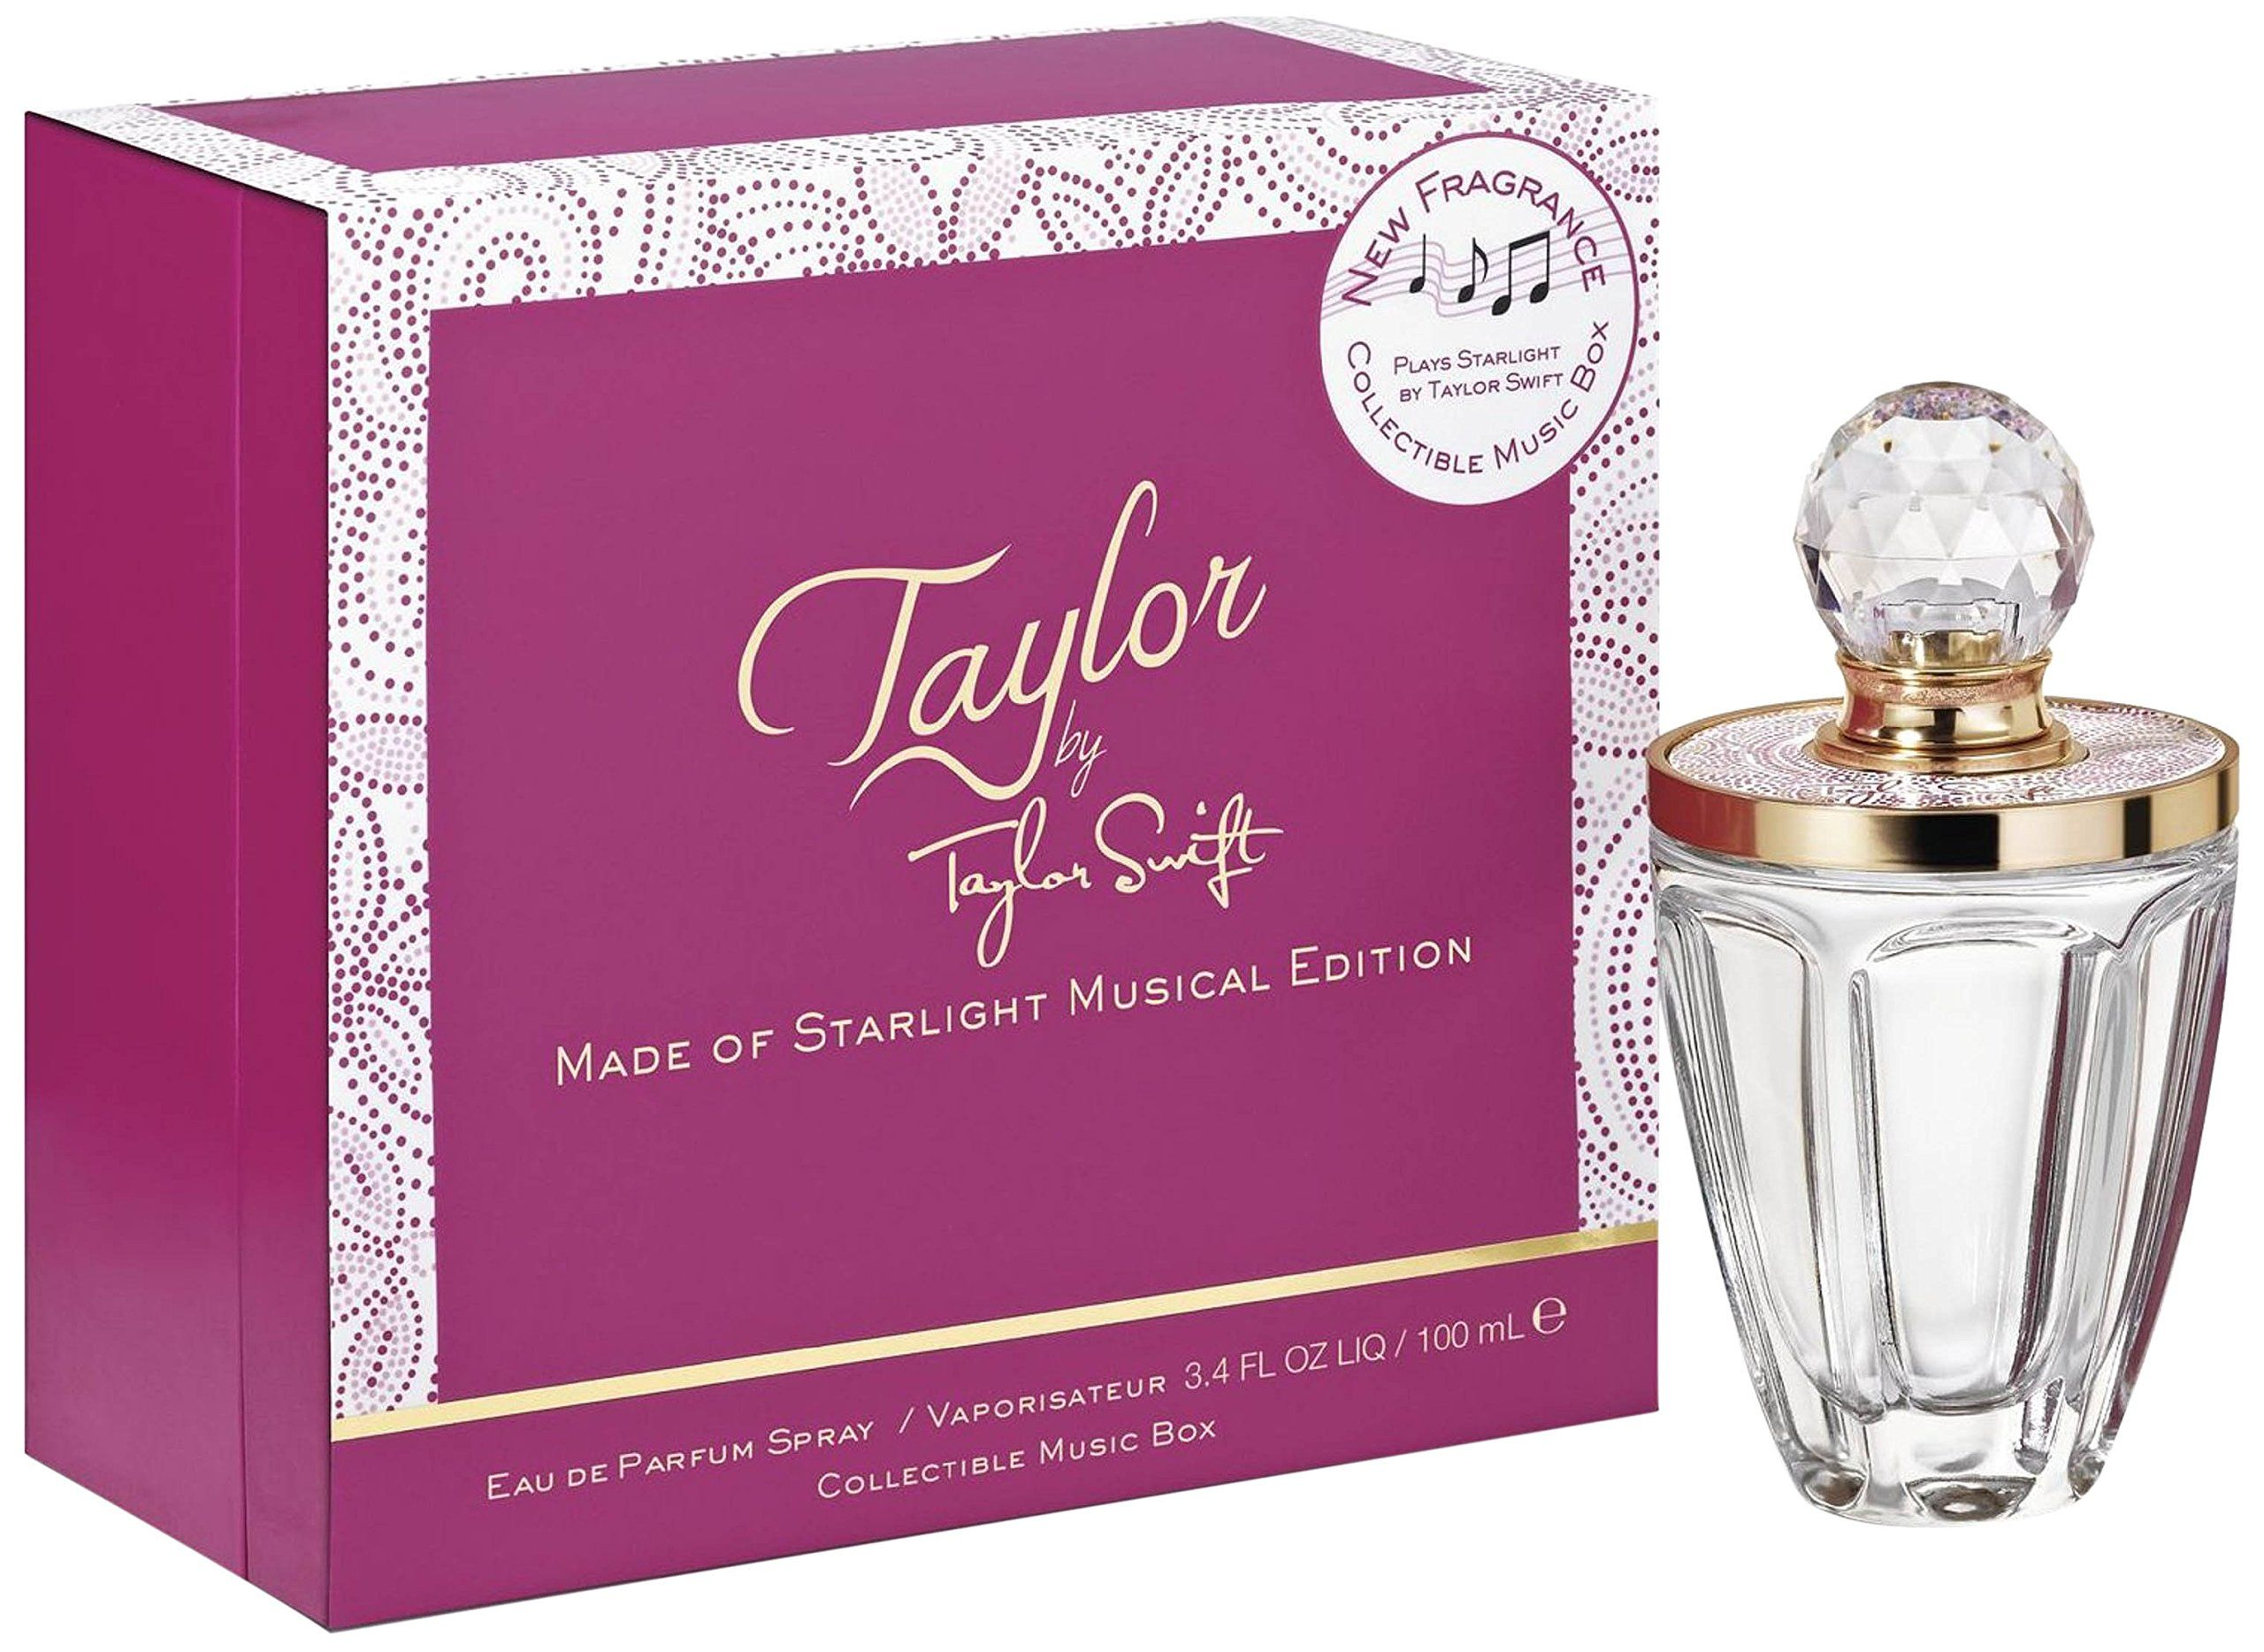 Taylor Swift Eau De Parfum Spray Collectable Music Box For Women Original Revlon Charlie Red Edt 100ml Free Vial By Made Of Starlight Musical Jewlery W 34 Fl Oz Perfume Read More At The Image Link